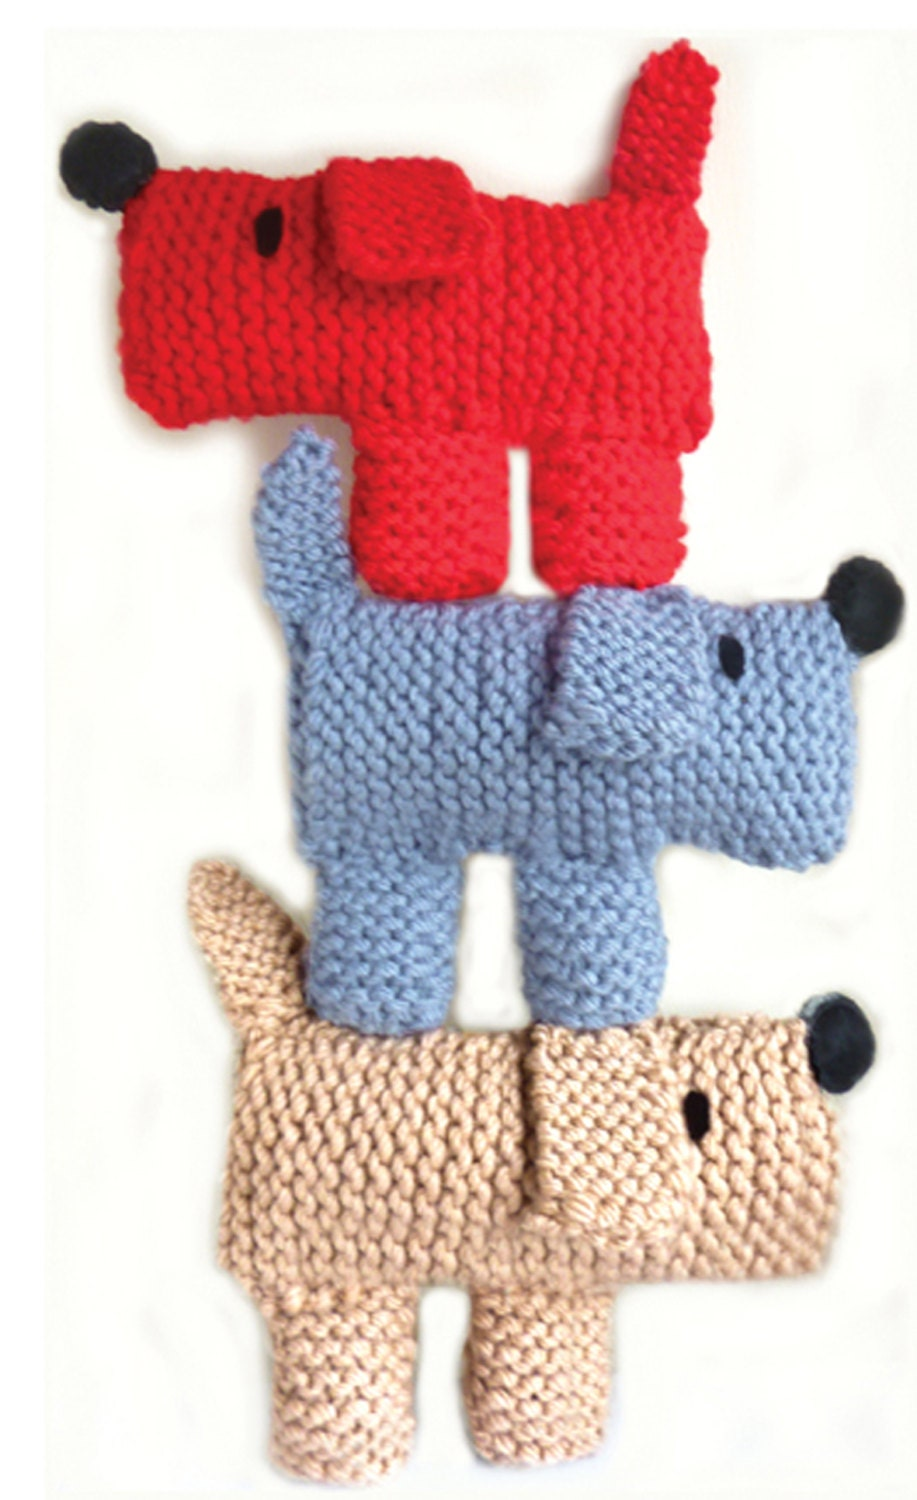 Beginner Knitting Kits Canada : Learn to knit kit scruff the dog from gifthorsekits on